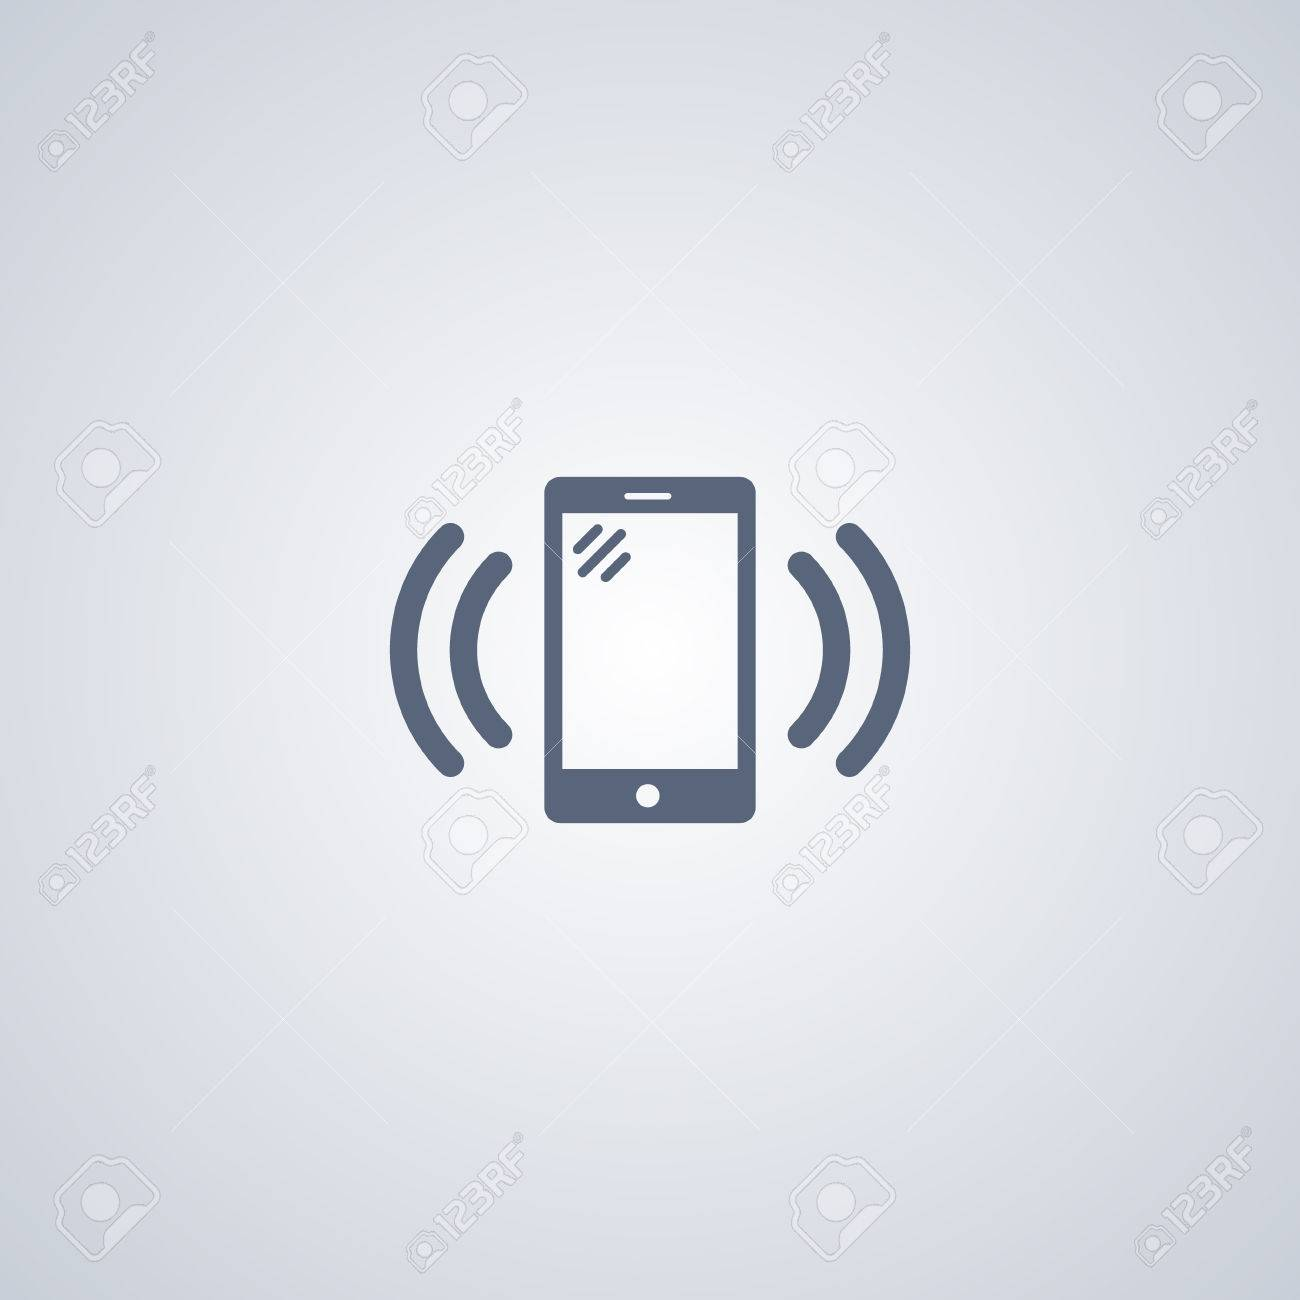 Vibration Smartphone Vector Icon Royalty Free Cliparts, Vectors, And ...